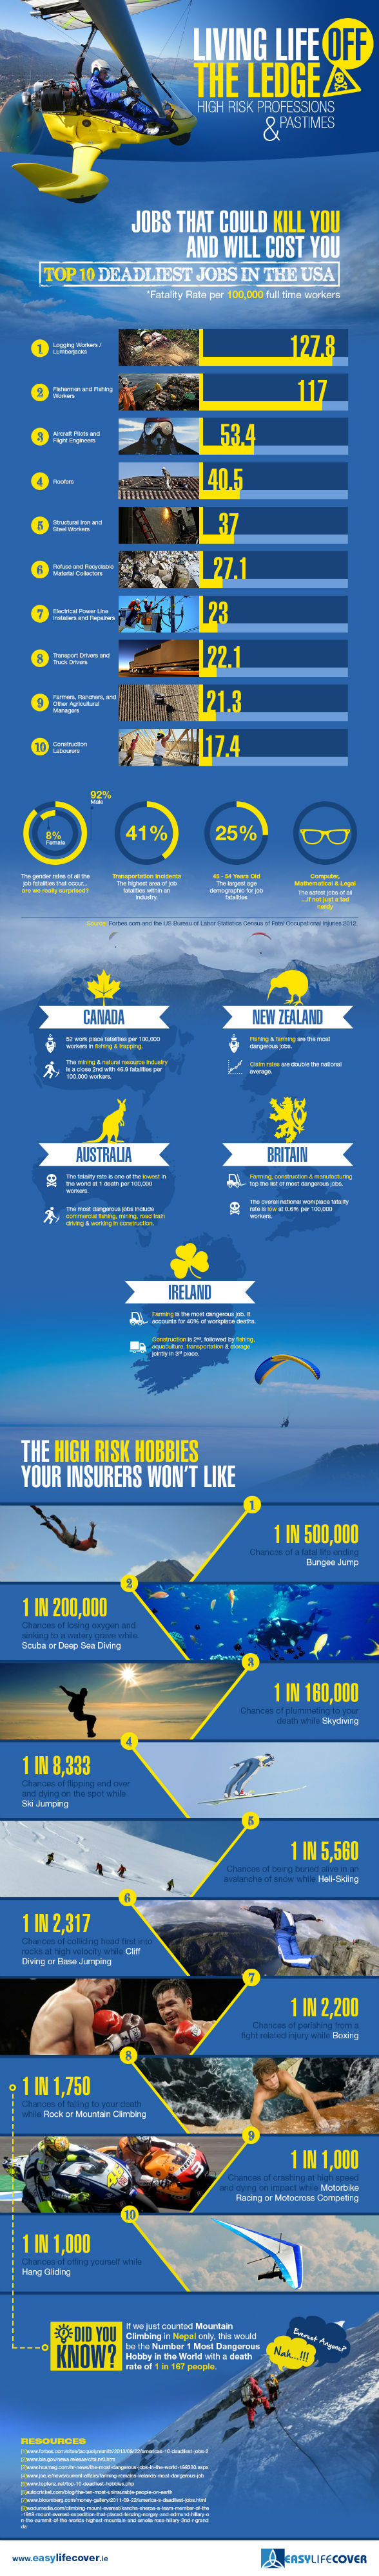 Living Life Off The Edge [Infographic]